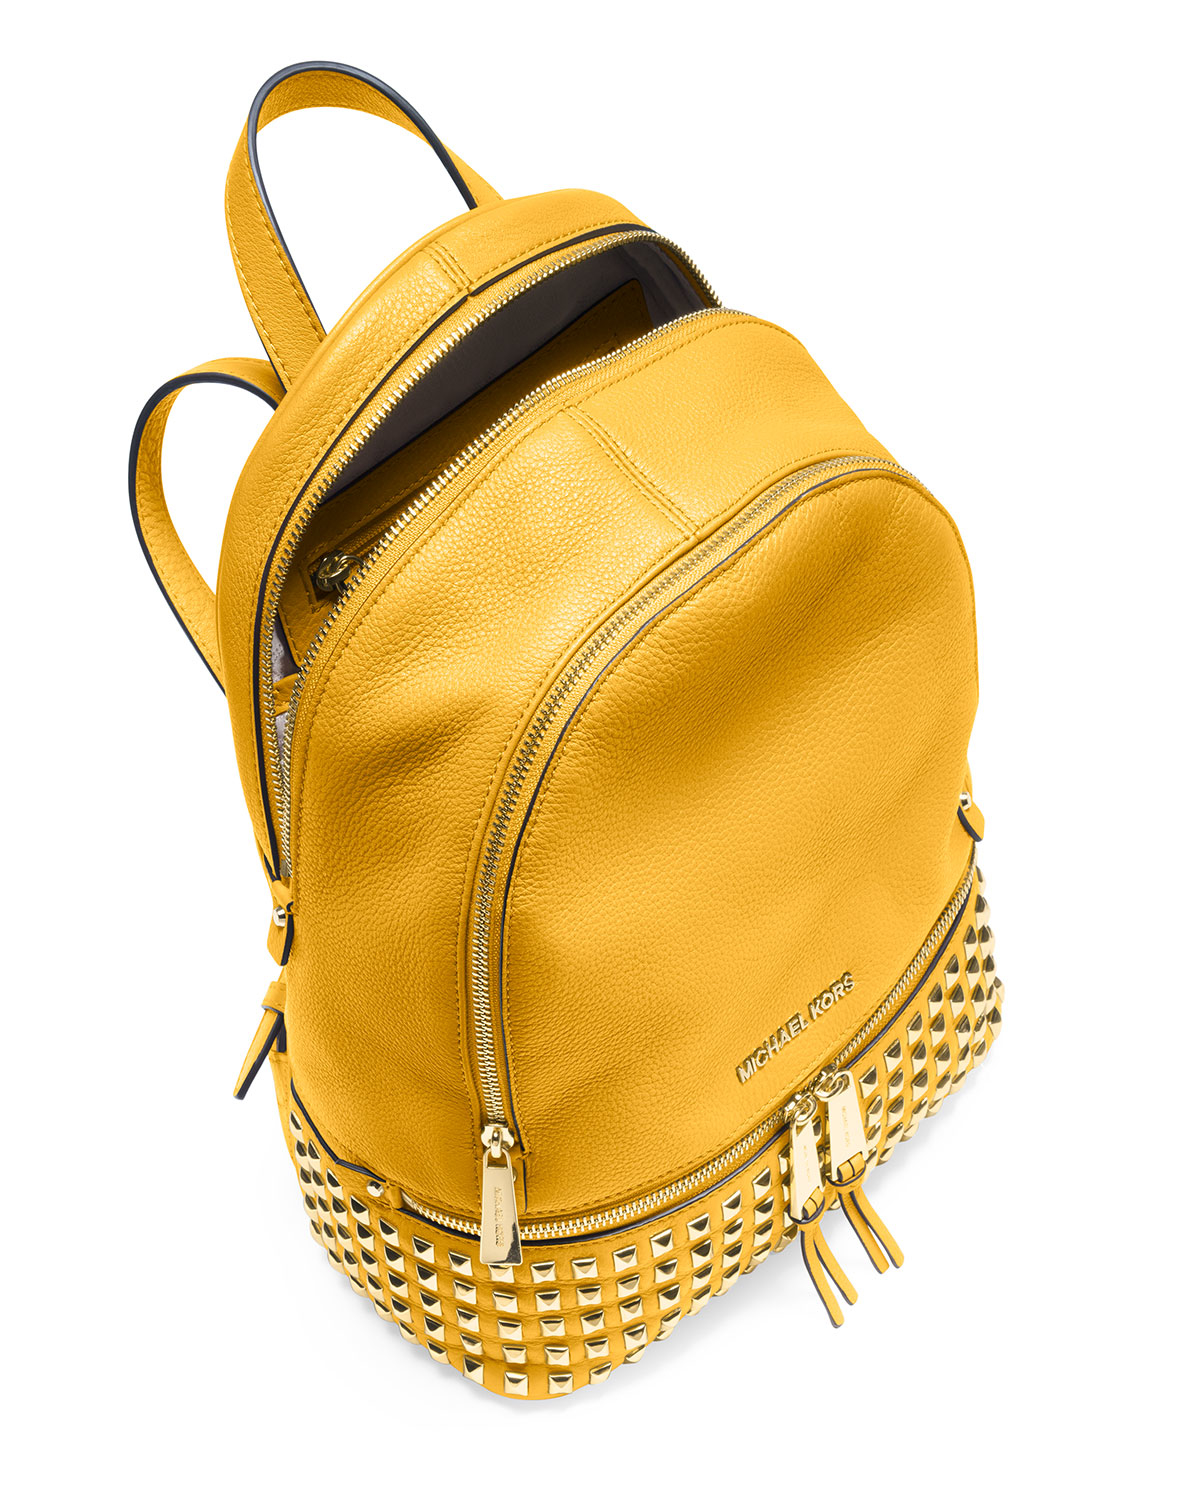 1a73d90c0a8d ... free shipping purchase lyst michael michael kors rhea small studded  leather backpack in 79d99 ec0a4 06a77